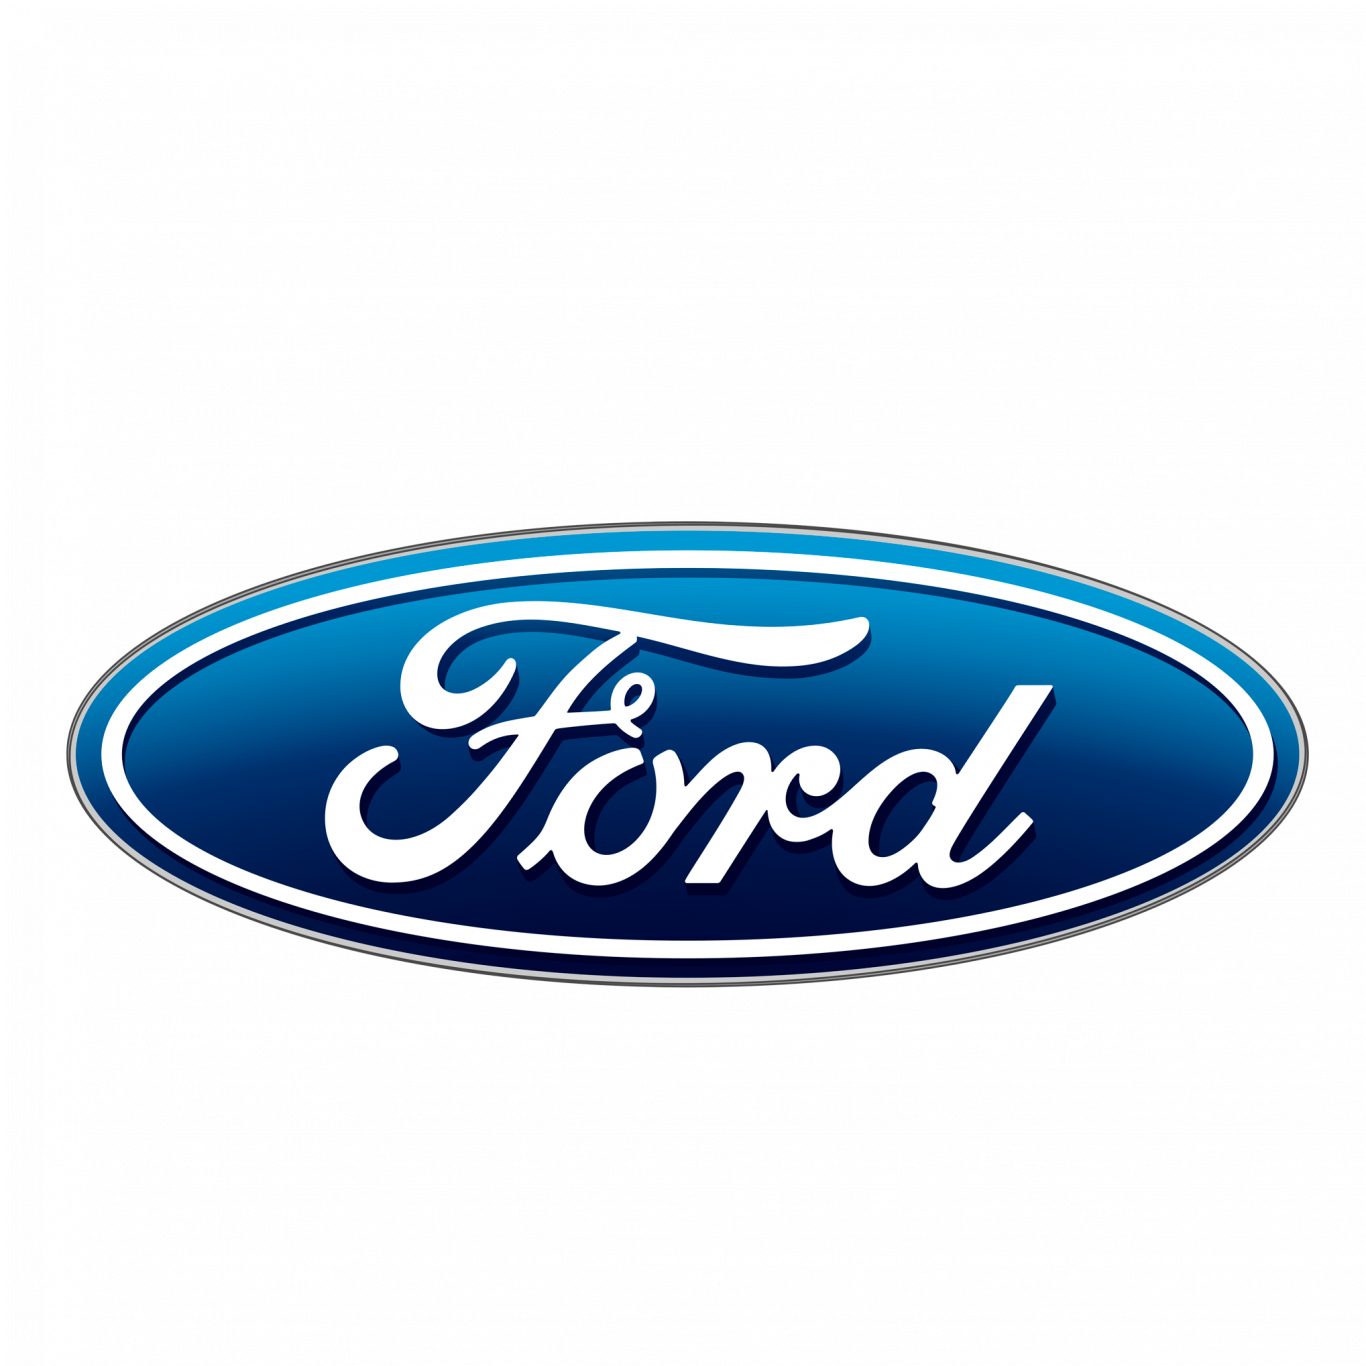 Xe Ford